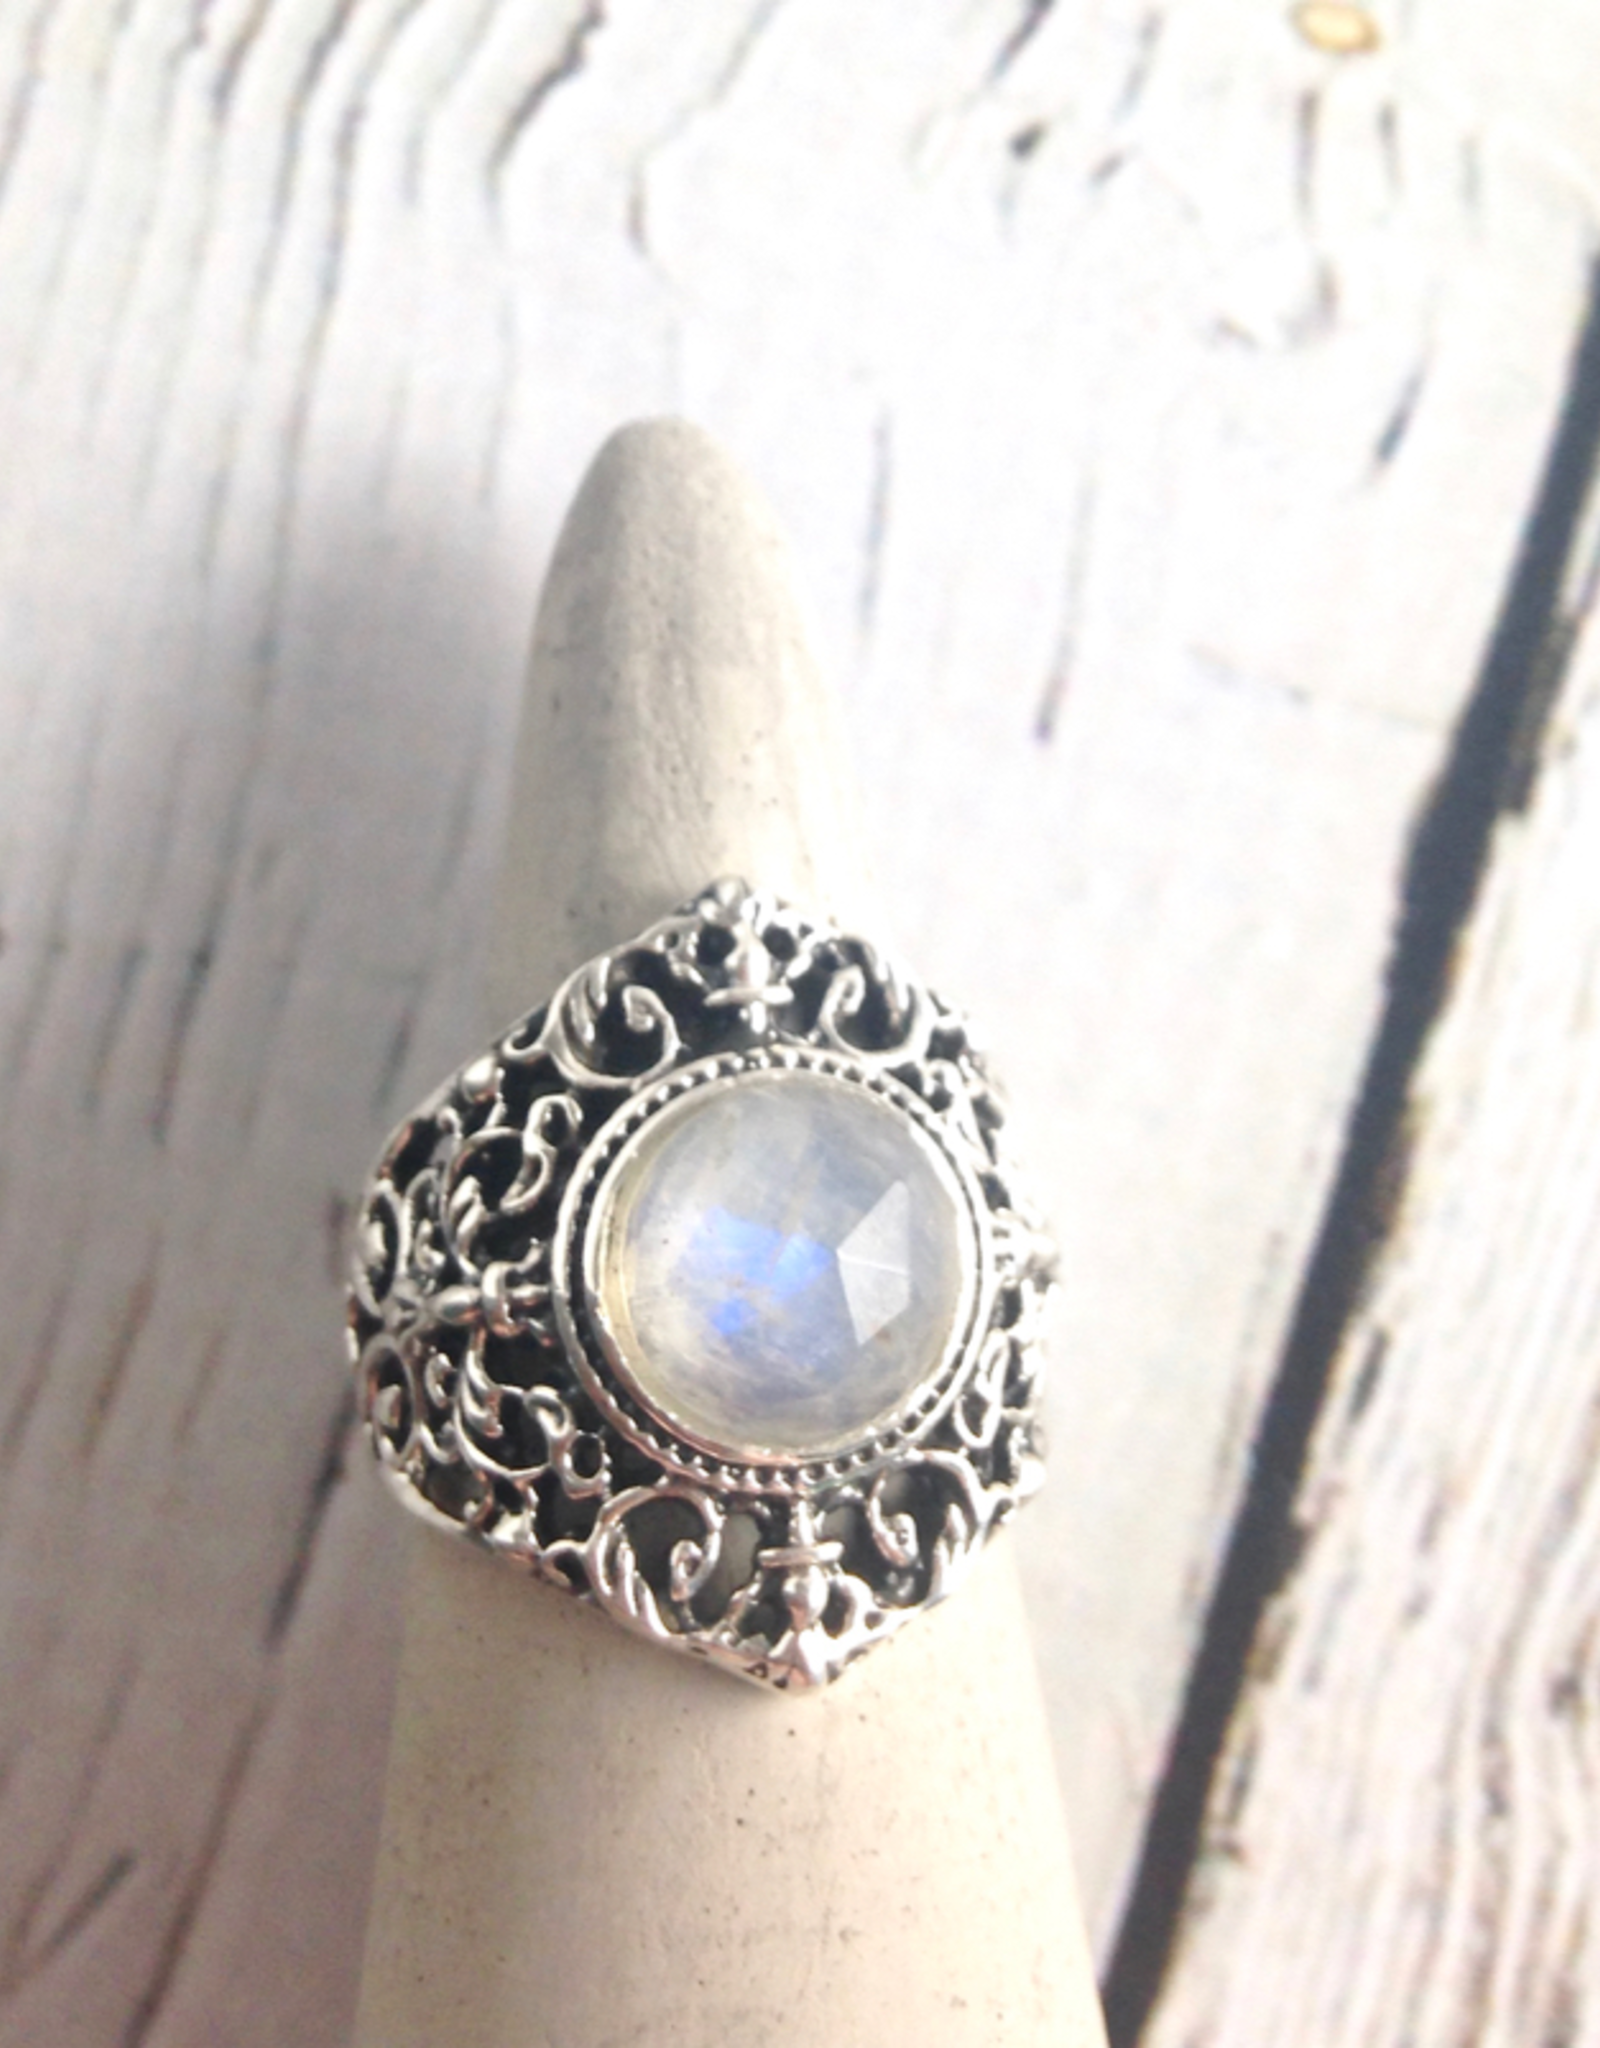 TigerMtn Sterling Silver Ring with Round Faceted Moonstone, Size 7